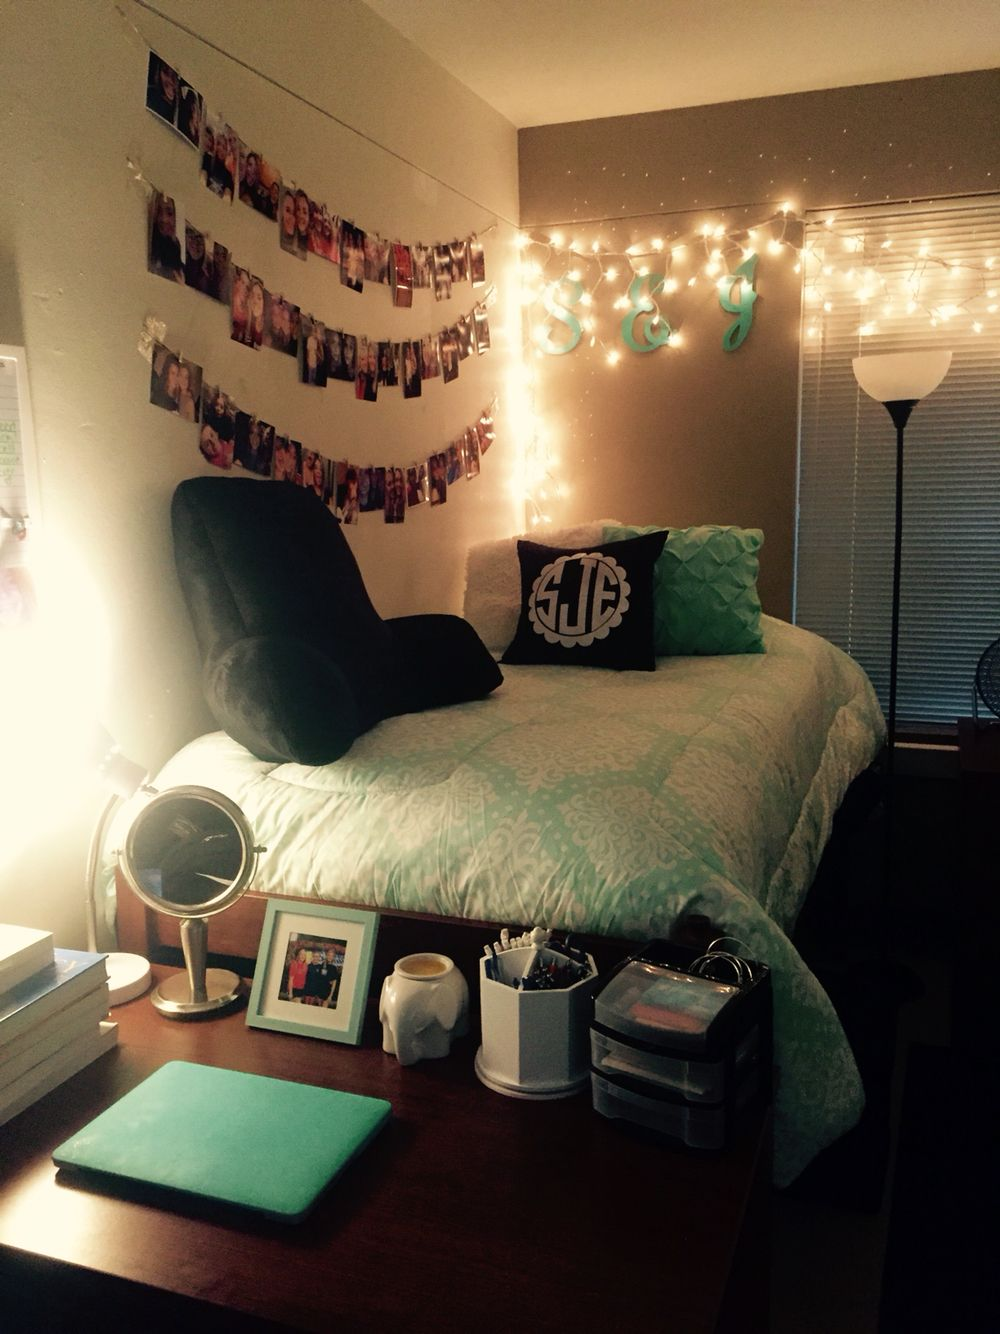 College dorm room 2015 college bound pinterest for Room decor dorm